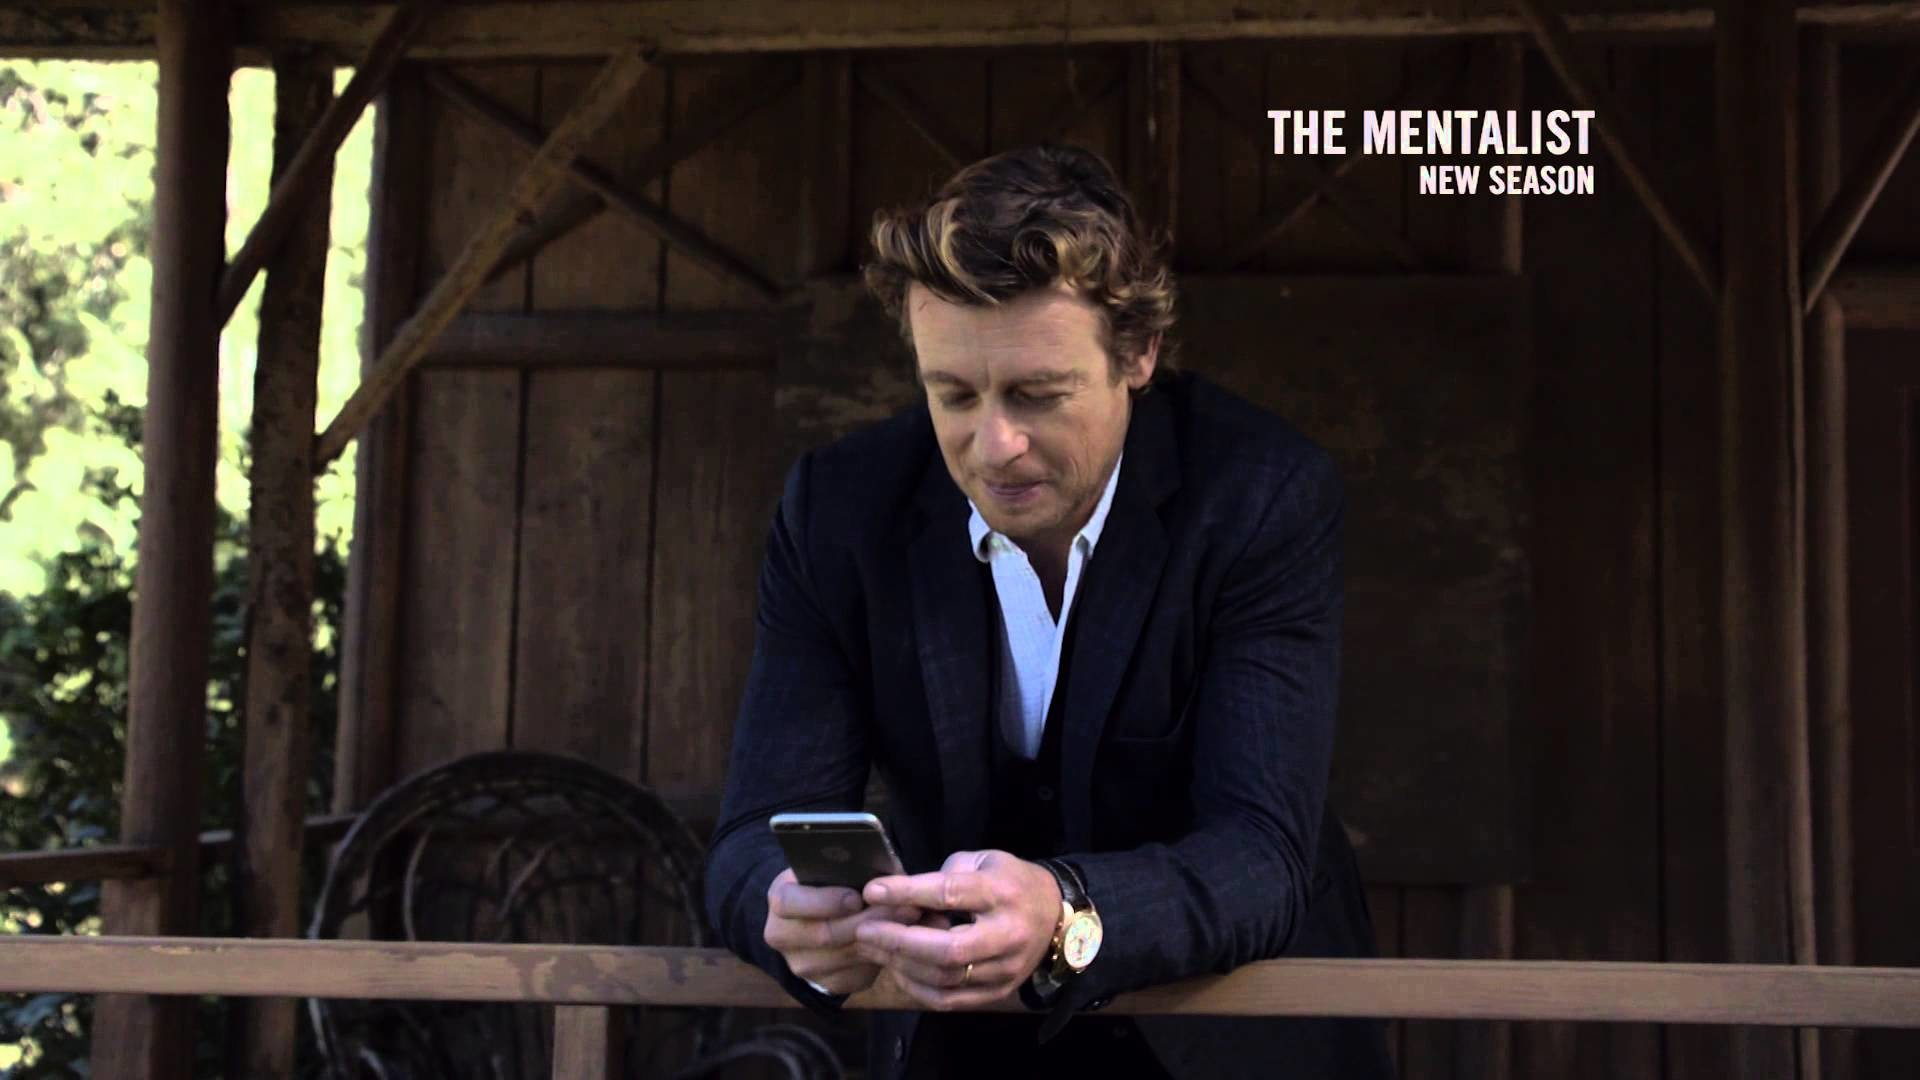 The Mentalist Wallpaper (70+ images)